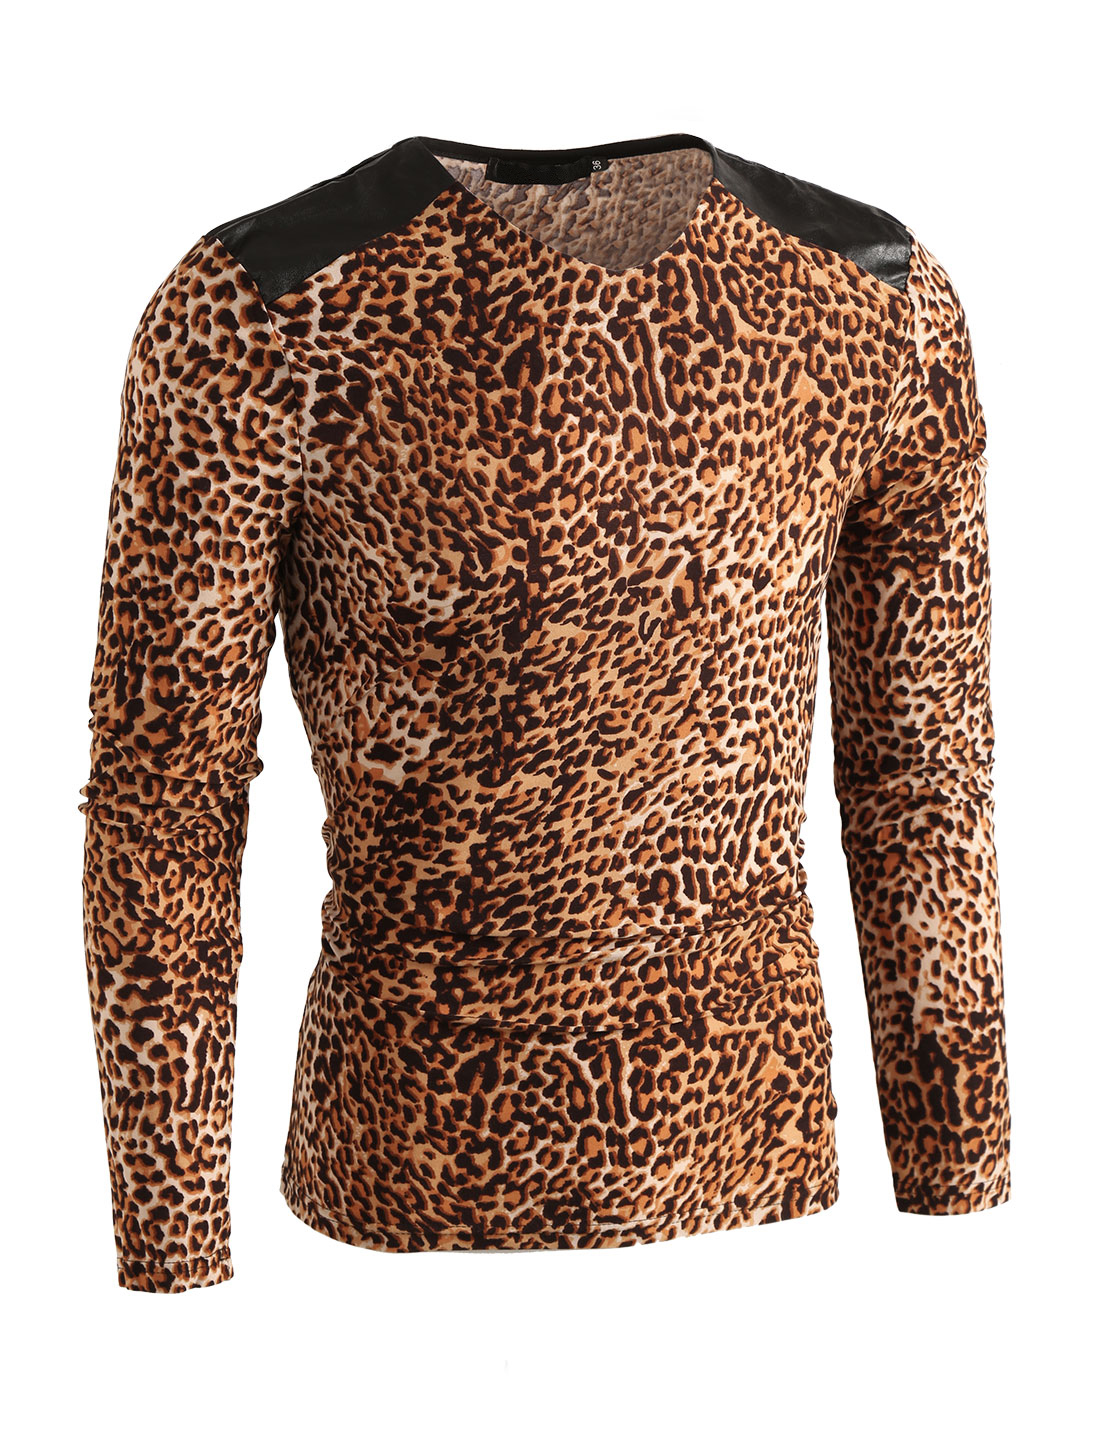 Men Fashion Beige Brown Leopard Prints Stretch Leisure Tee Shirt S